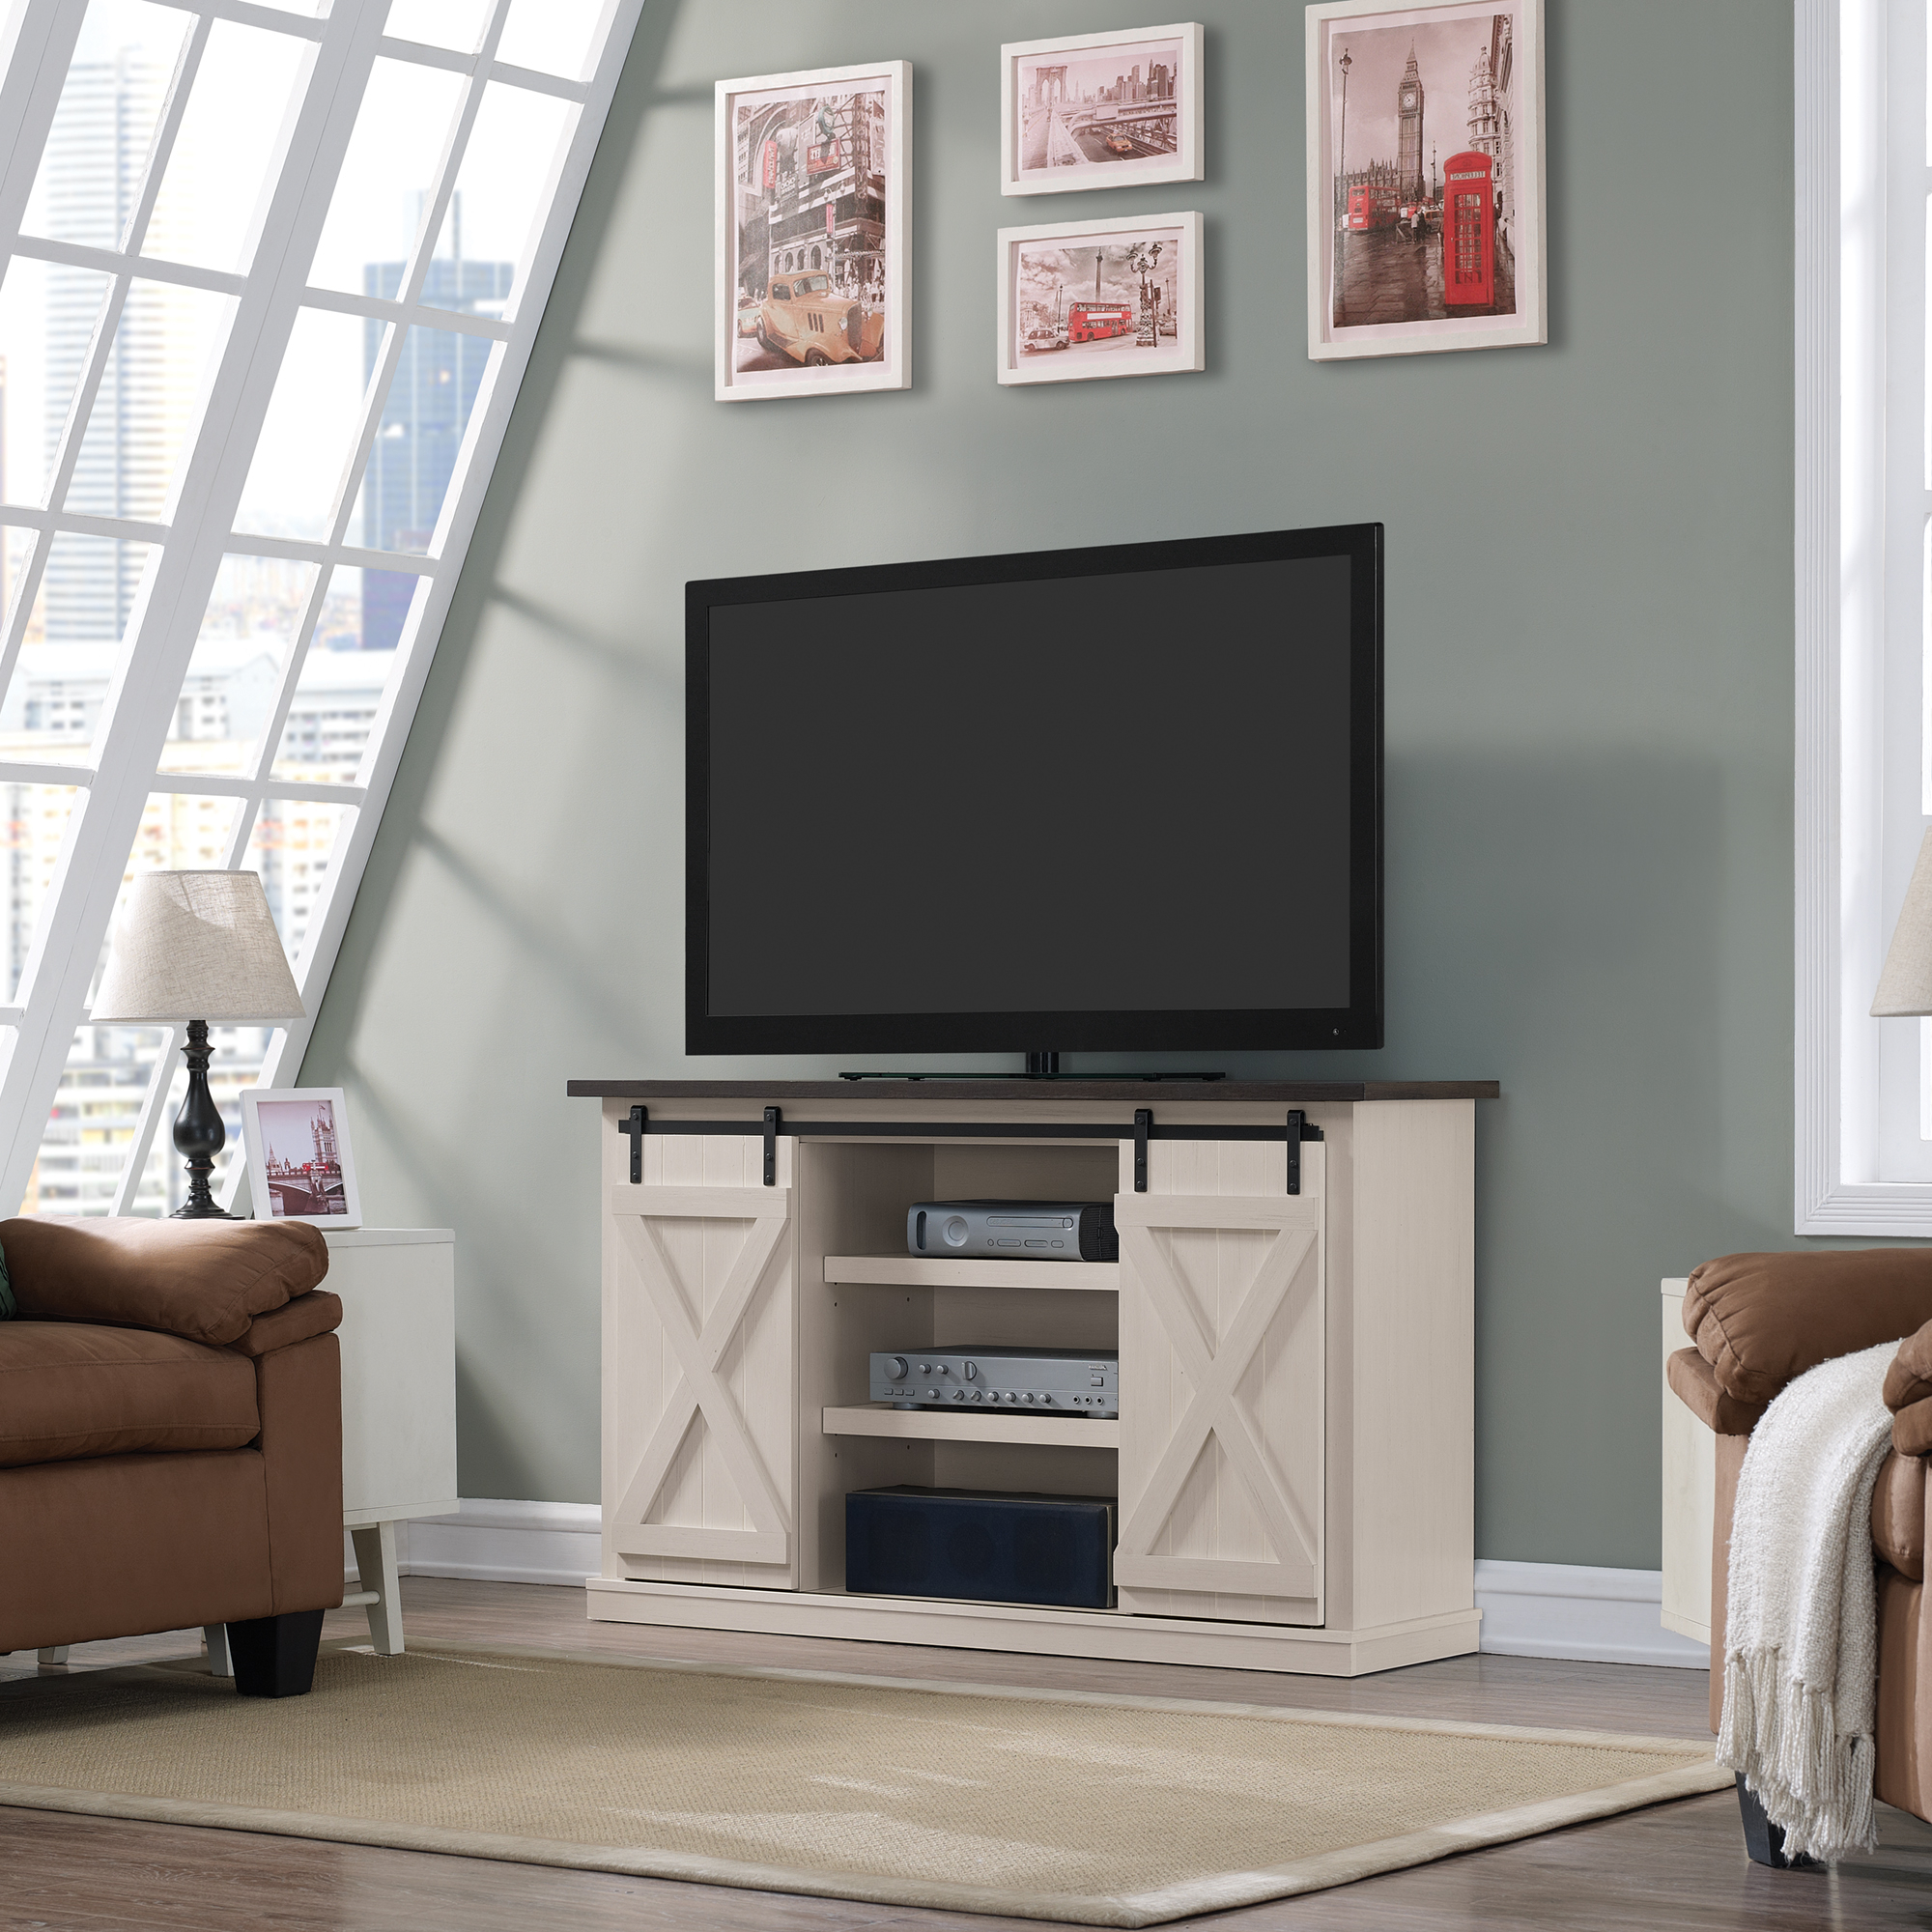 Cottonwood Tv Stand For Tvs Up To 60 Inches With Sliding Within Farmhouse Sliding Barn Door Tv Stands For 70 Inch Flat Screen (View 15 of 20)